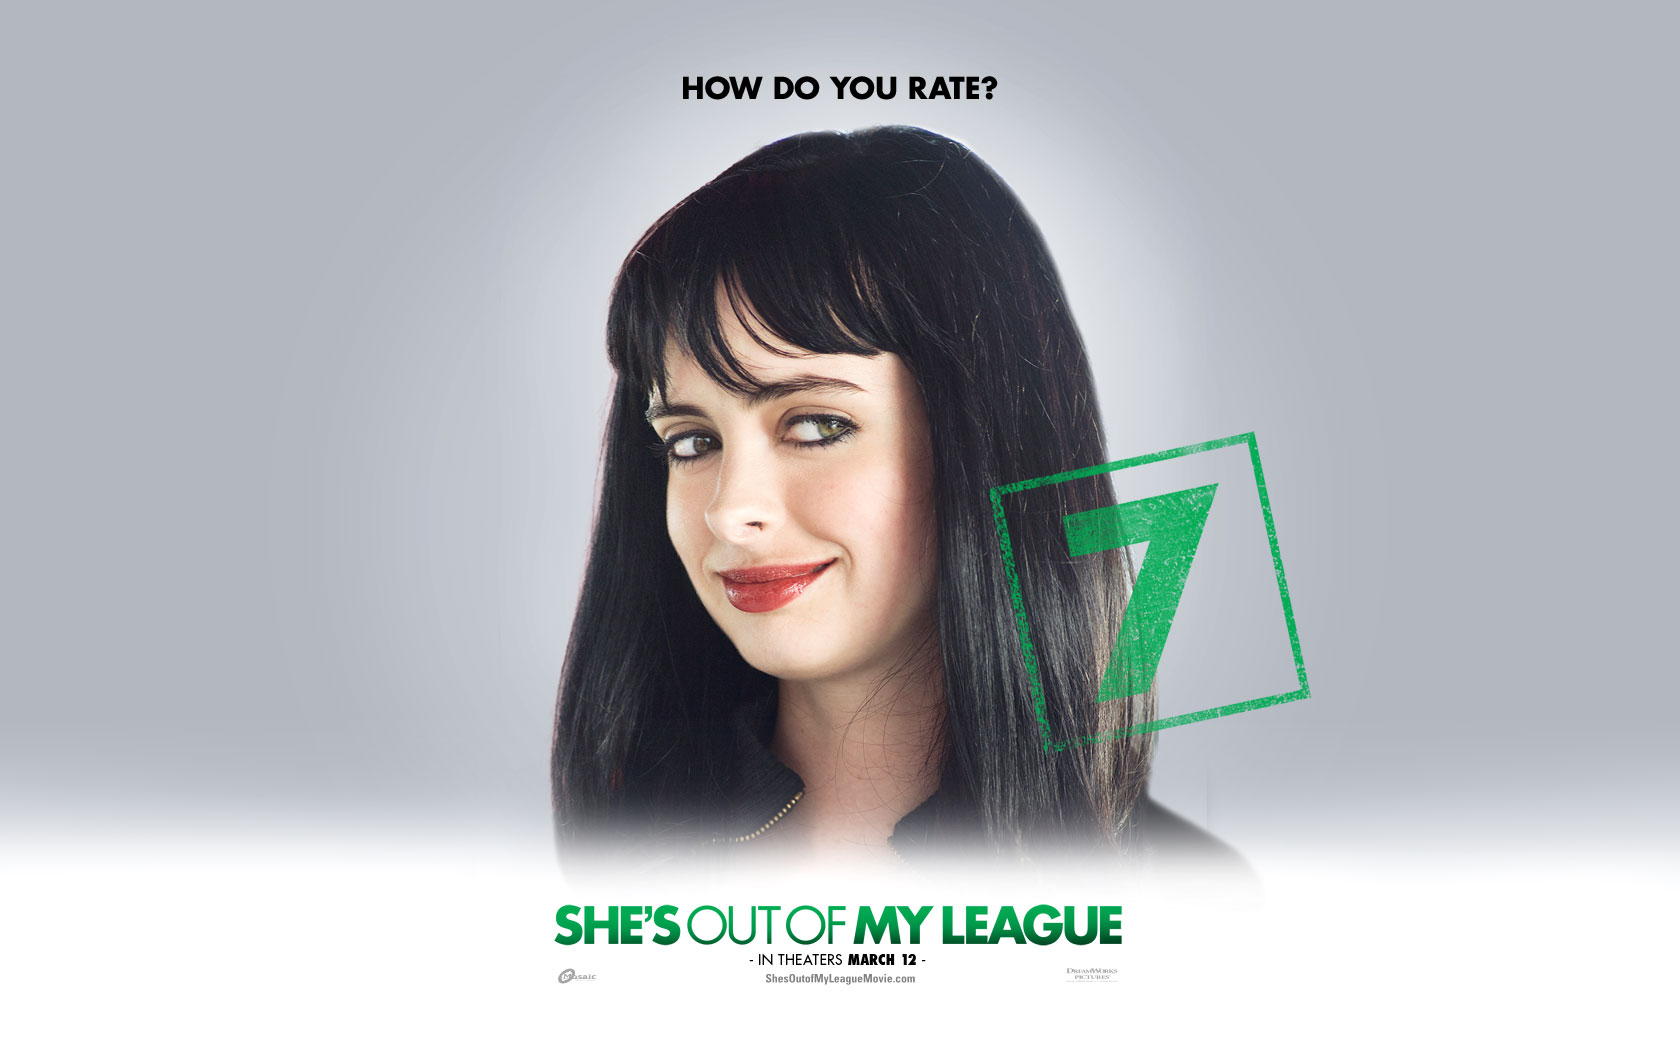 Krysten_Ritter_in_Shes_Out_of_My_League_Wallpaper_5_1280